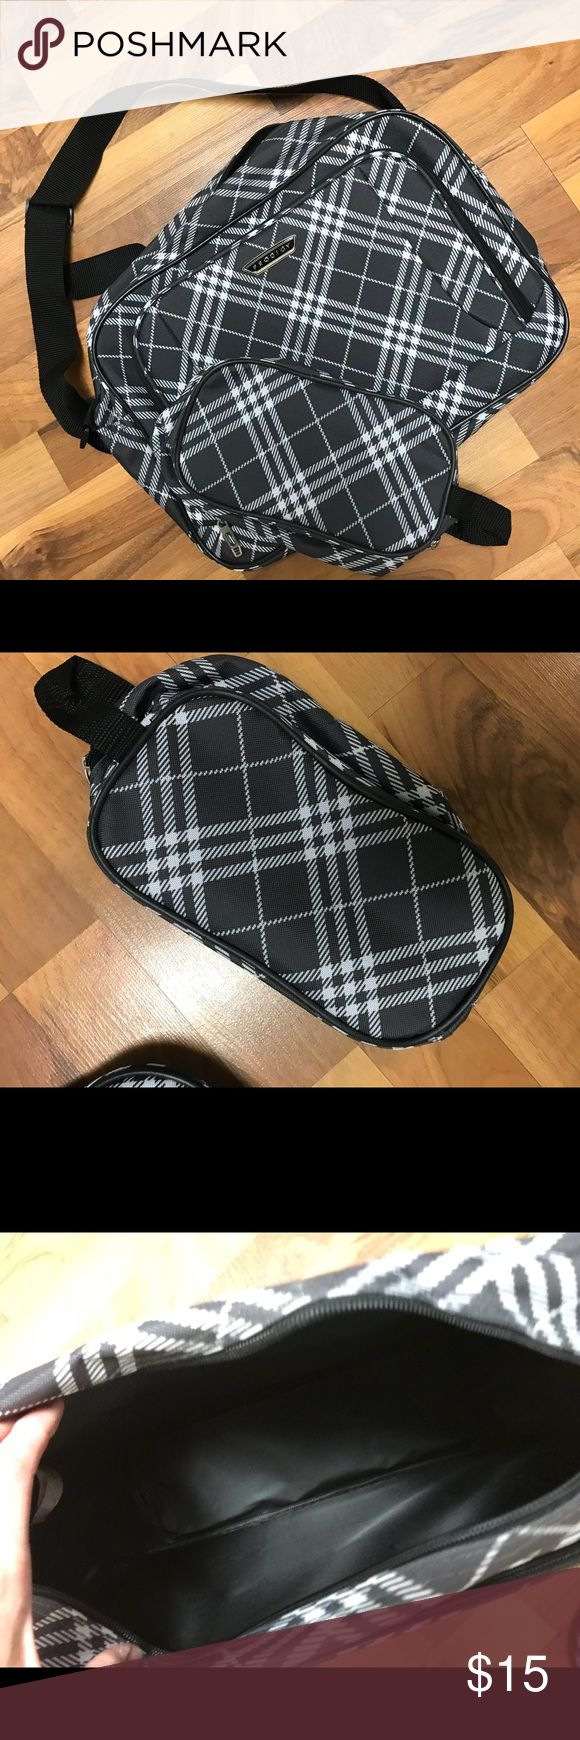 NWOT Prodigy 2 pc travel bag and toiletry bag This grey and black plaid 2 piece shoulder travel bag and toiletries bag is the perfect gift for any man or woman in your life. Brand new without tags. The slick material will resist water. prodigy Bags Luggage & Travel Bags